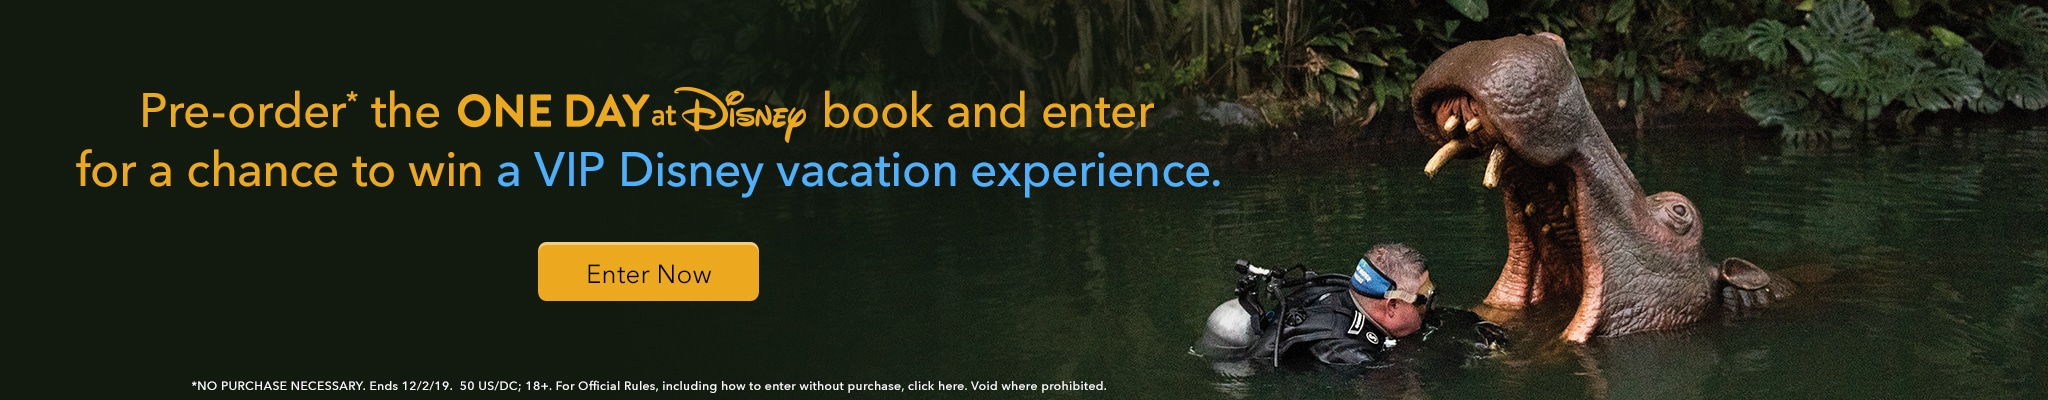 Pre-order the One Day at Disney book and enter for a chance to win ua VIP Disney vacation experience! NO PURCHASE NECESSARY. Ends 12/2/19.  50 US/DC; 18+. For Official Rules, including how to enter without purchase, click here. Void where prohibited.